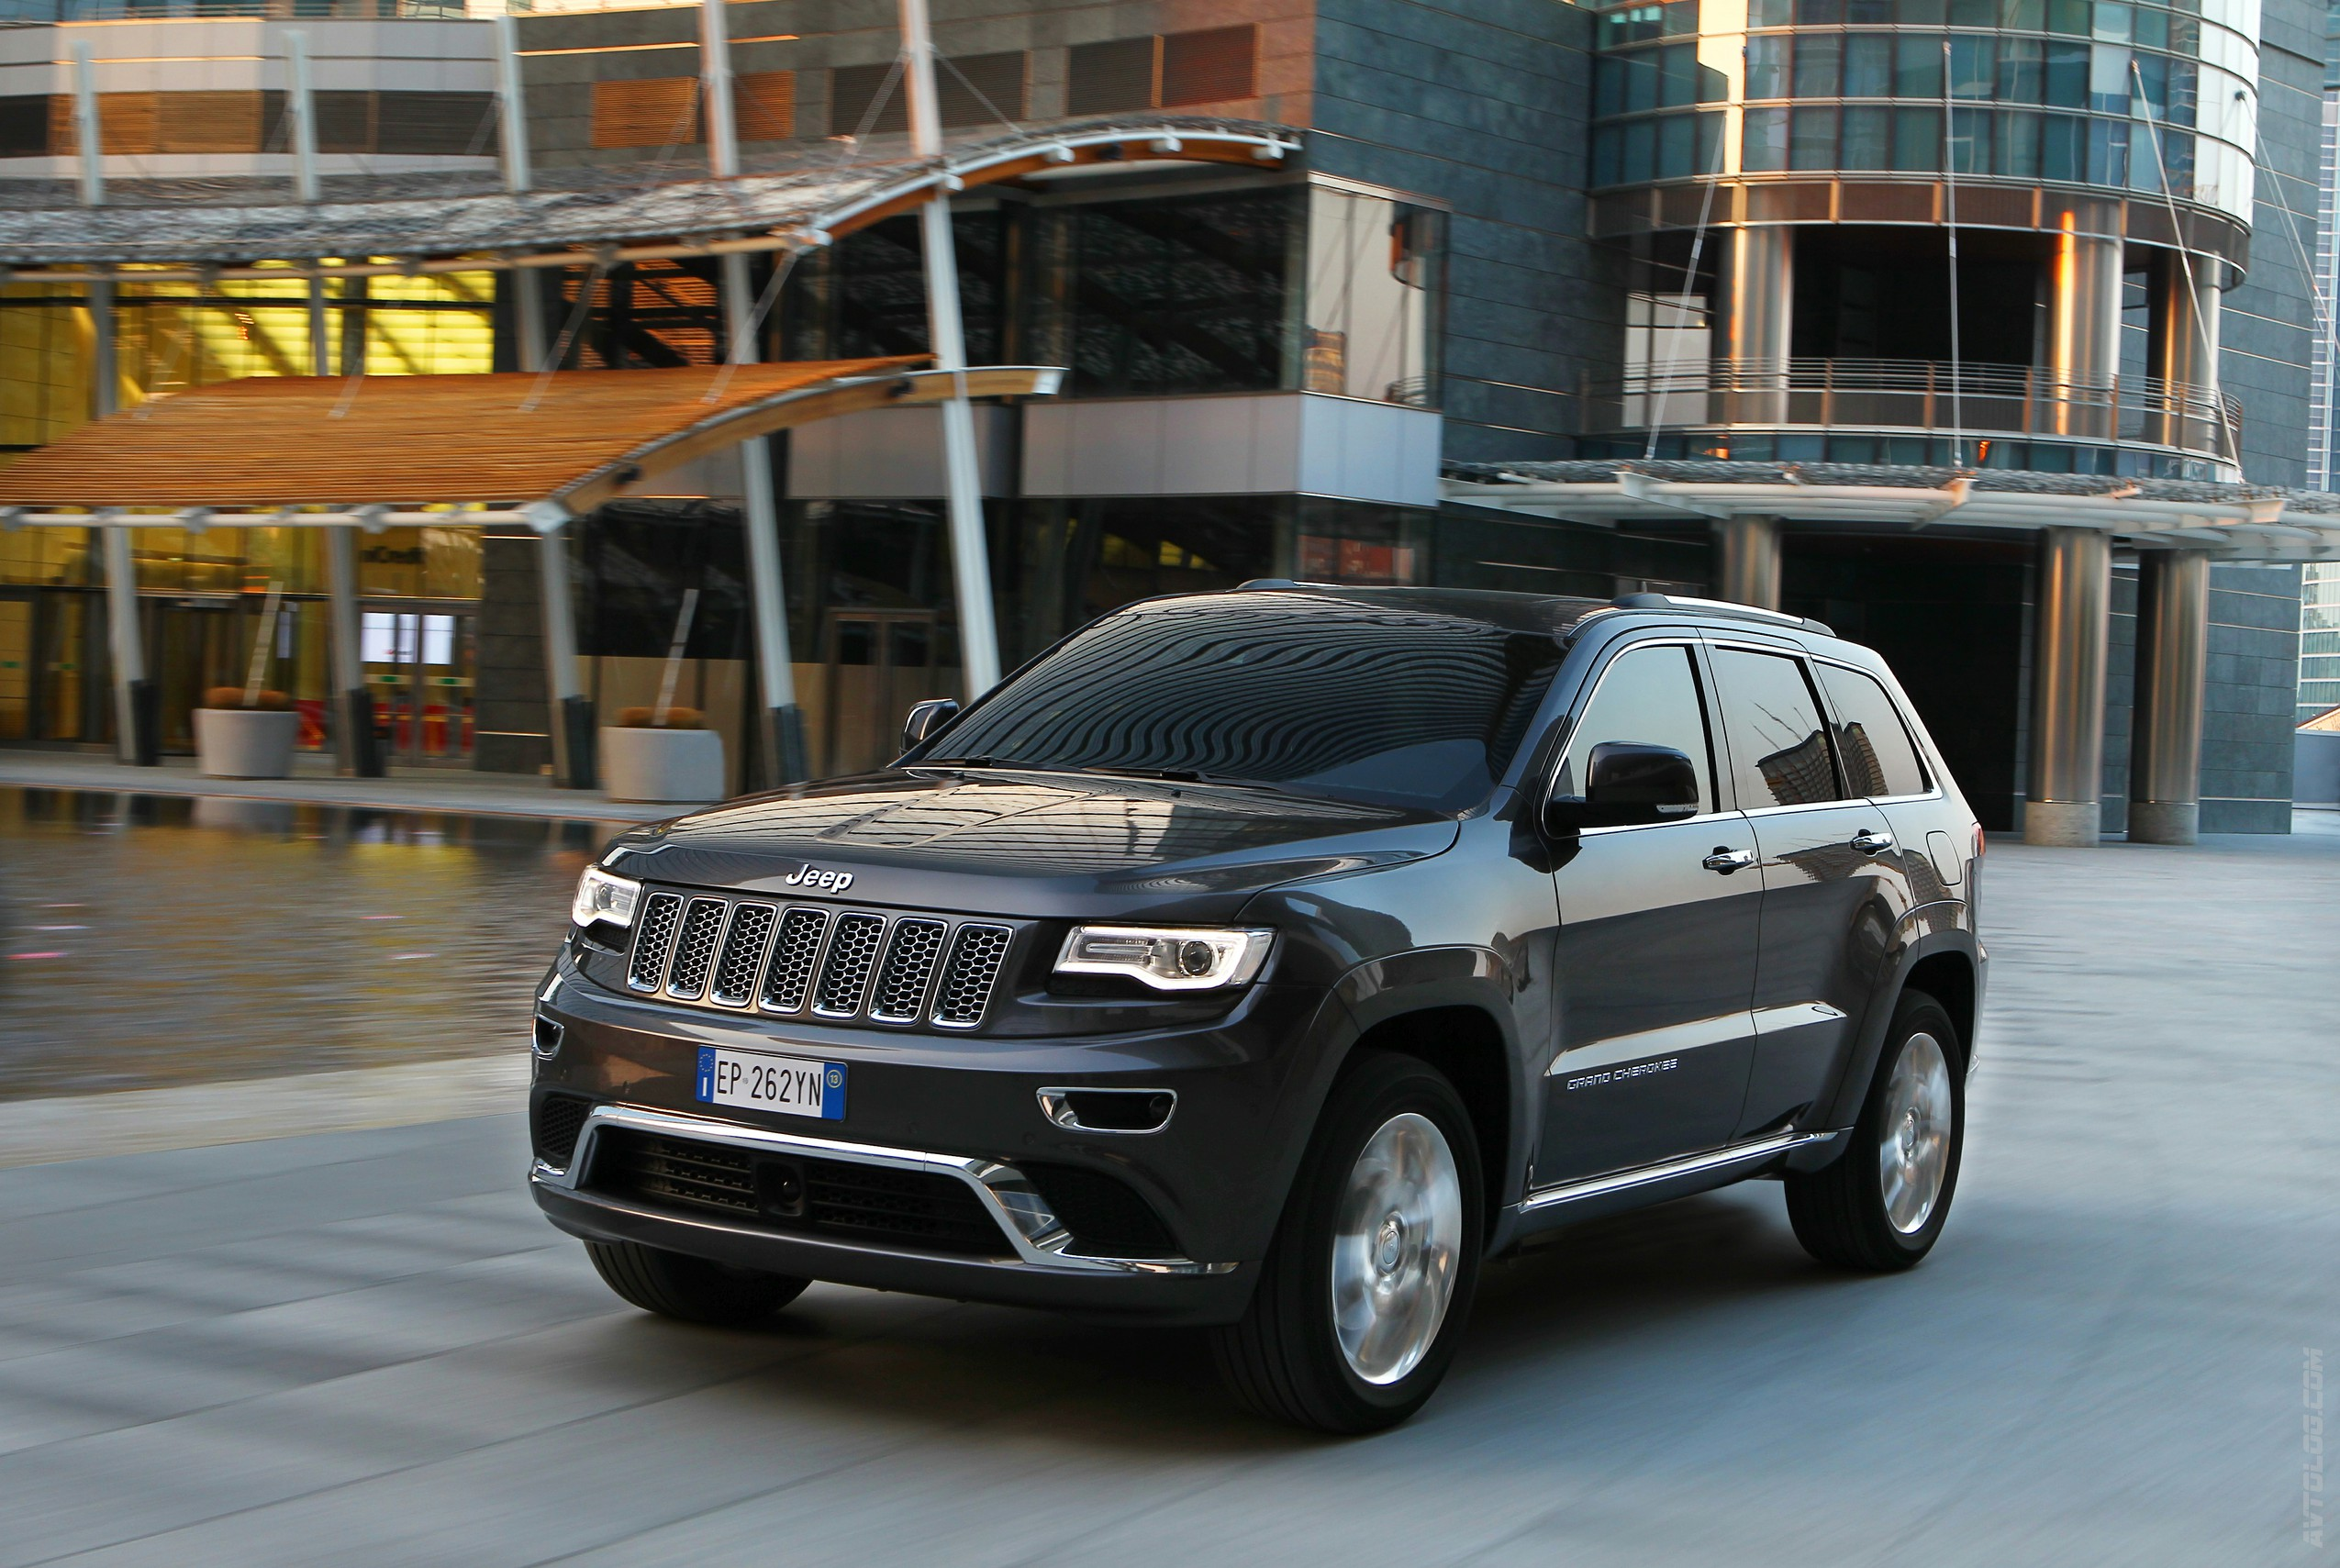 2018 Jeep Grand Cherokee EU Version photo - 4